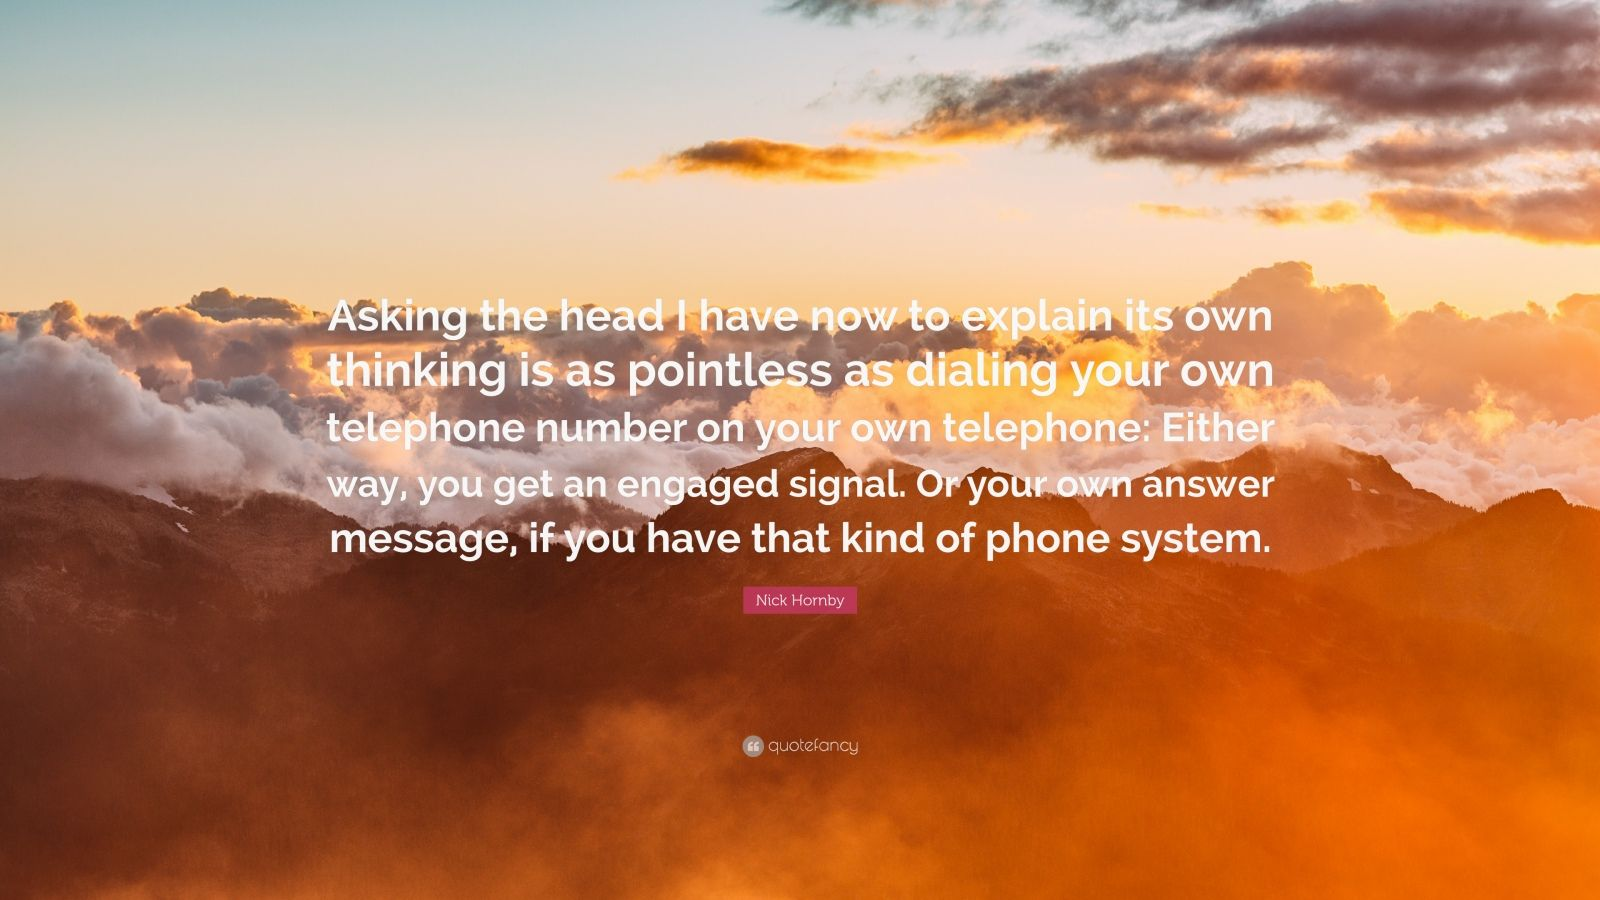 """Nick Hornby Quote: """"Asking the head I have now to explain its own thinking is as pointless as dialing your own telephone number on your own telephone: Either way, you get an engaged signal. Or your own answer message, if you have that kind of phone system."""""""